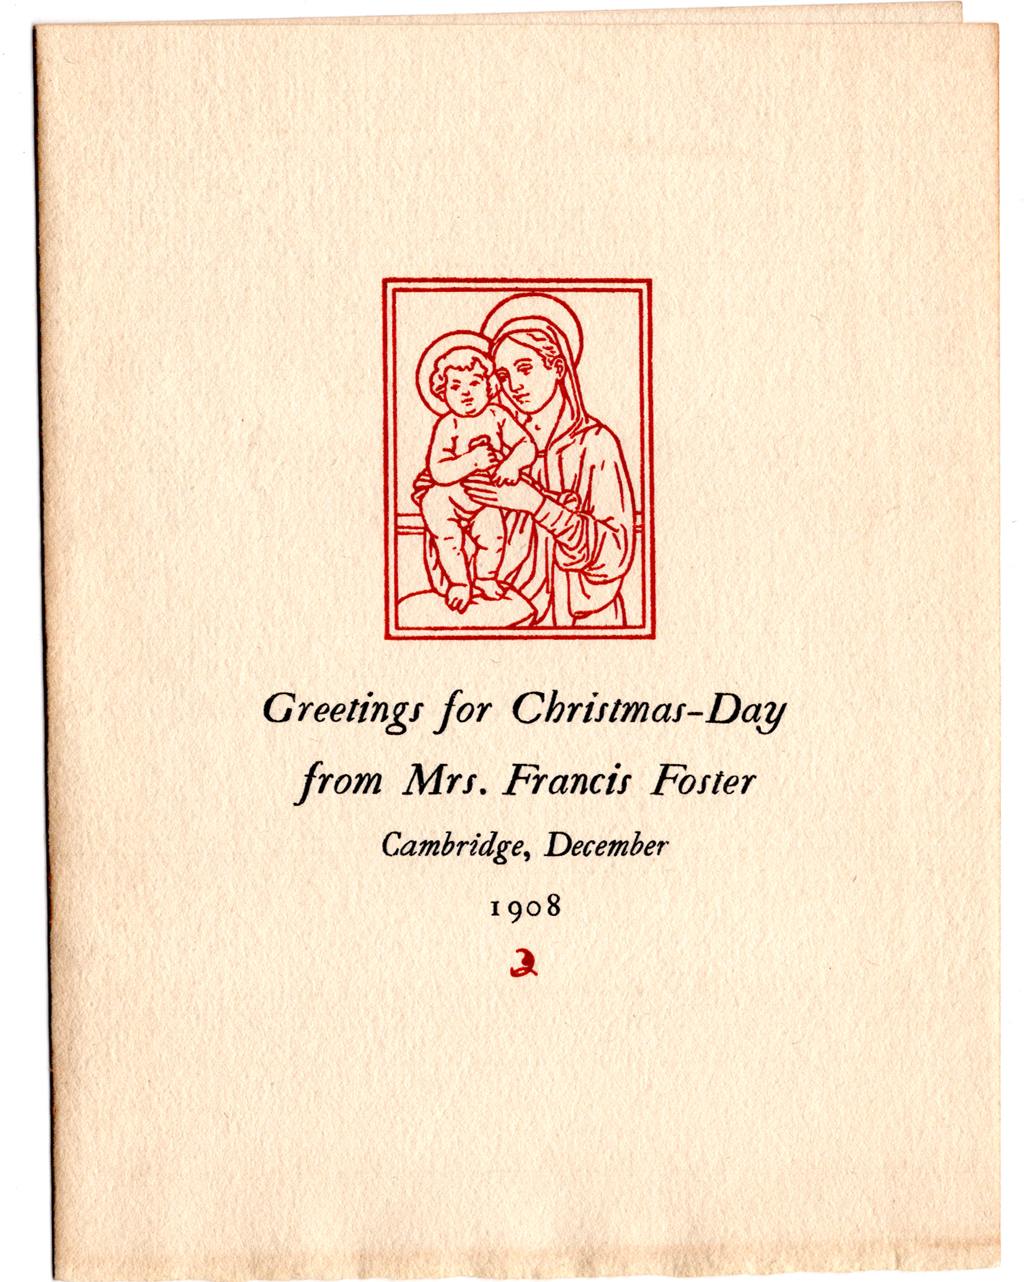 Christmas card for Mrs. Francis Foster, 1908. Illustration by W.A. Dwiggins; typography by Daniel Berkeley Updike; printing by The Merrymount Press. Courtesy of Martin Hutner.